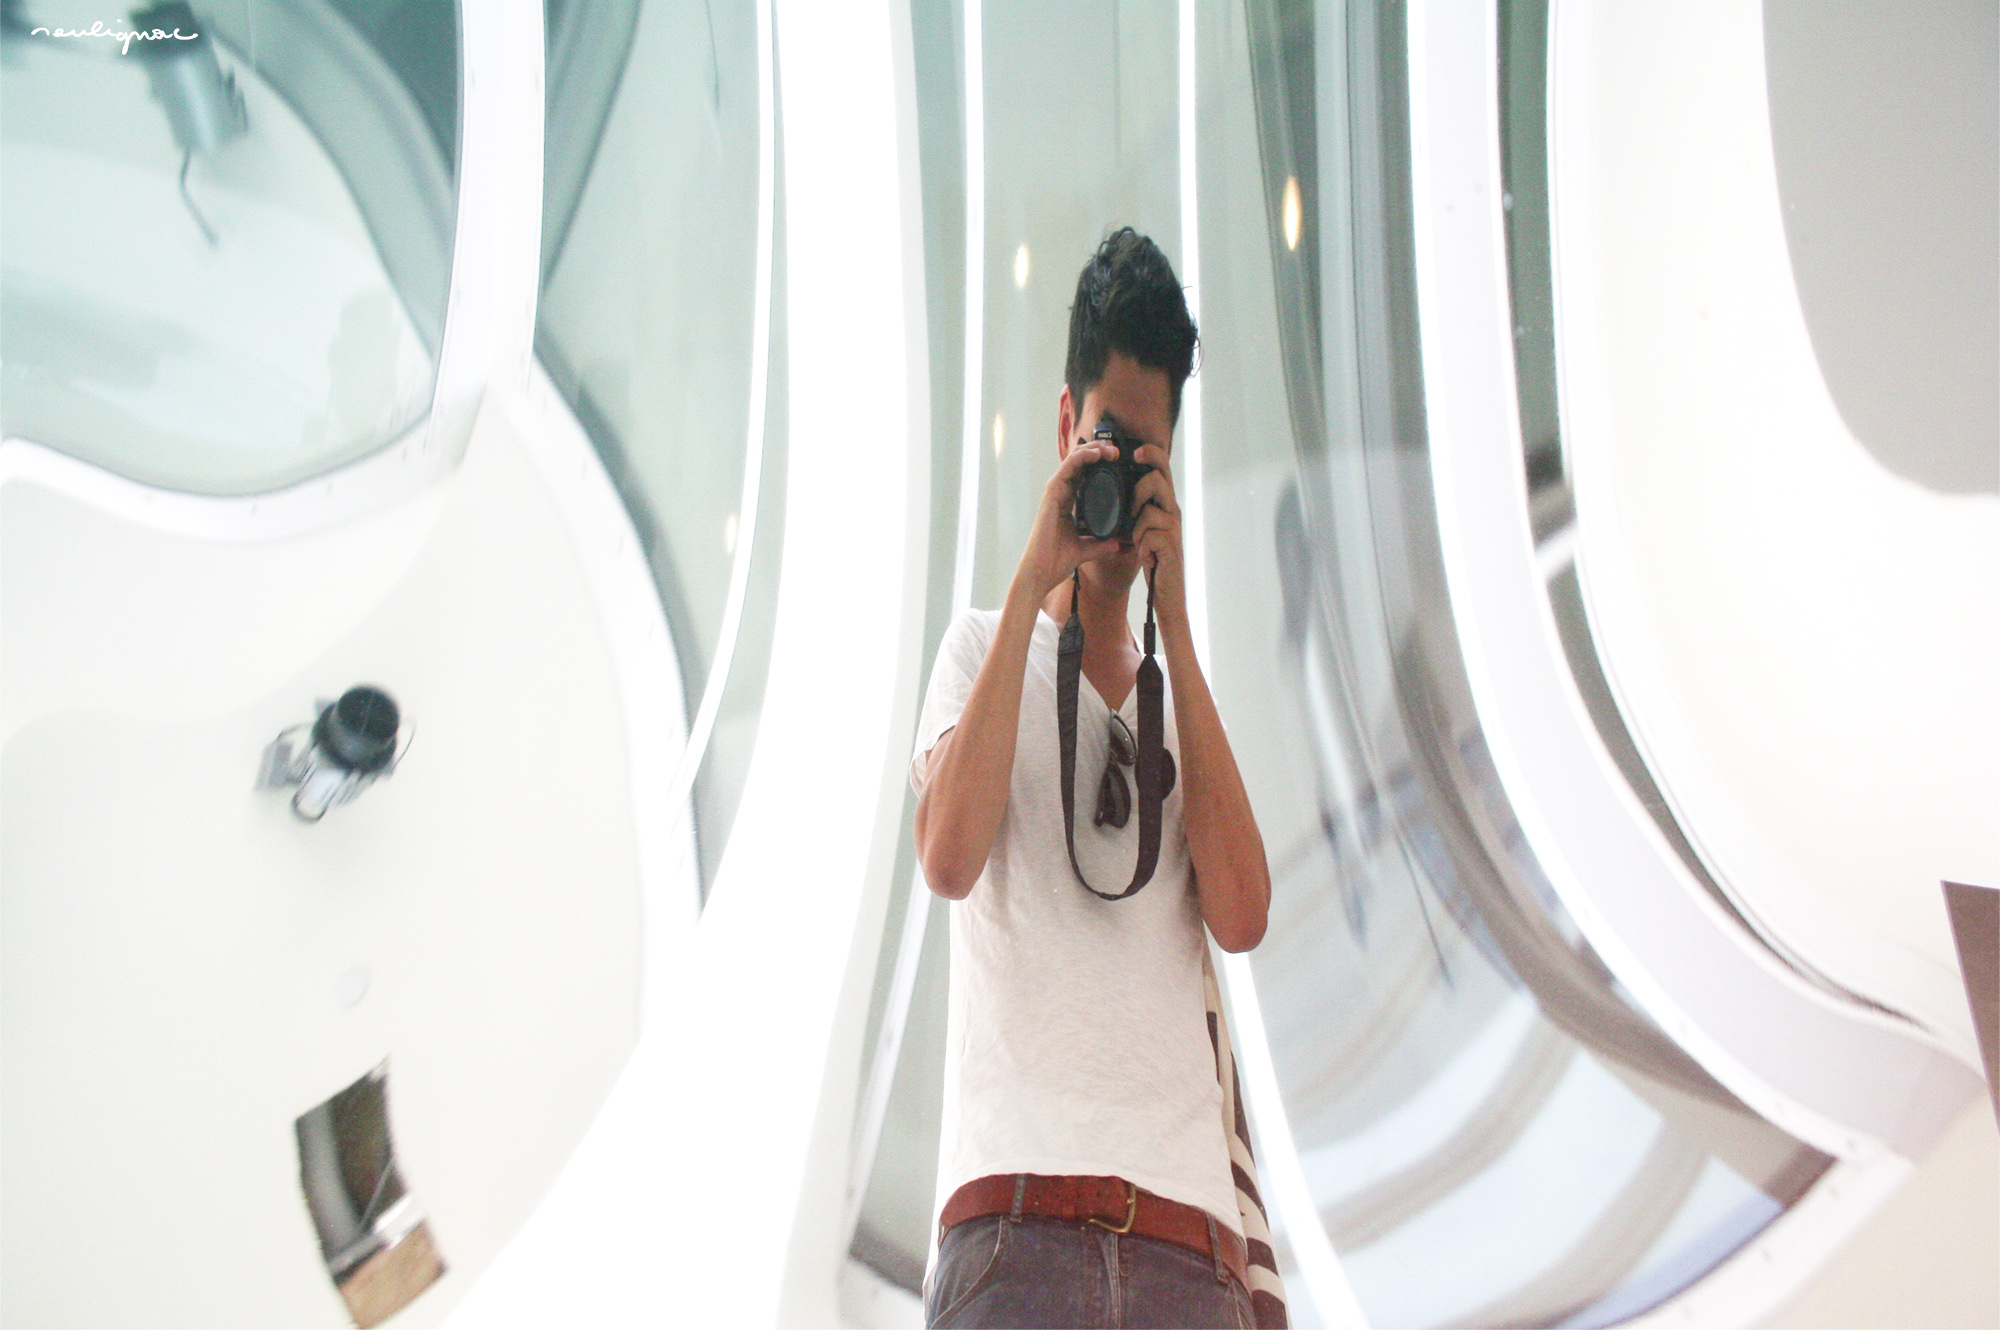 François Soulignac, Digital Creative, Art Director (Photo location: MIT - Stata Center Hall - Anish Kapoor Sculpture)